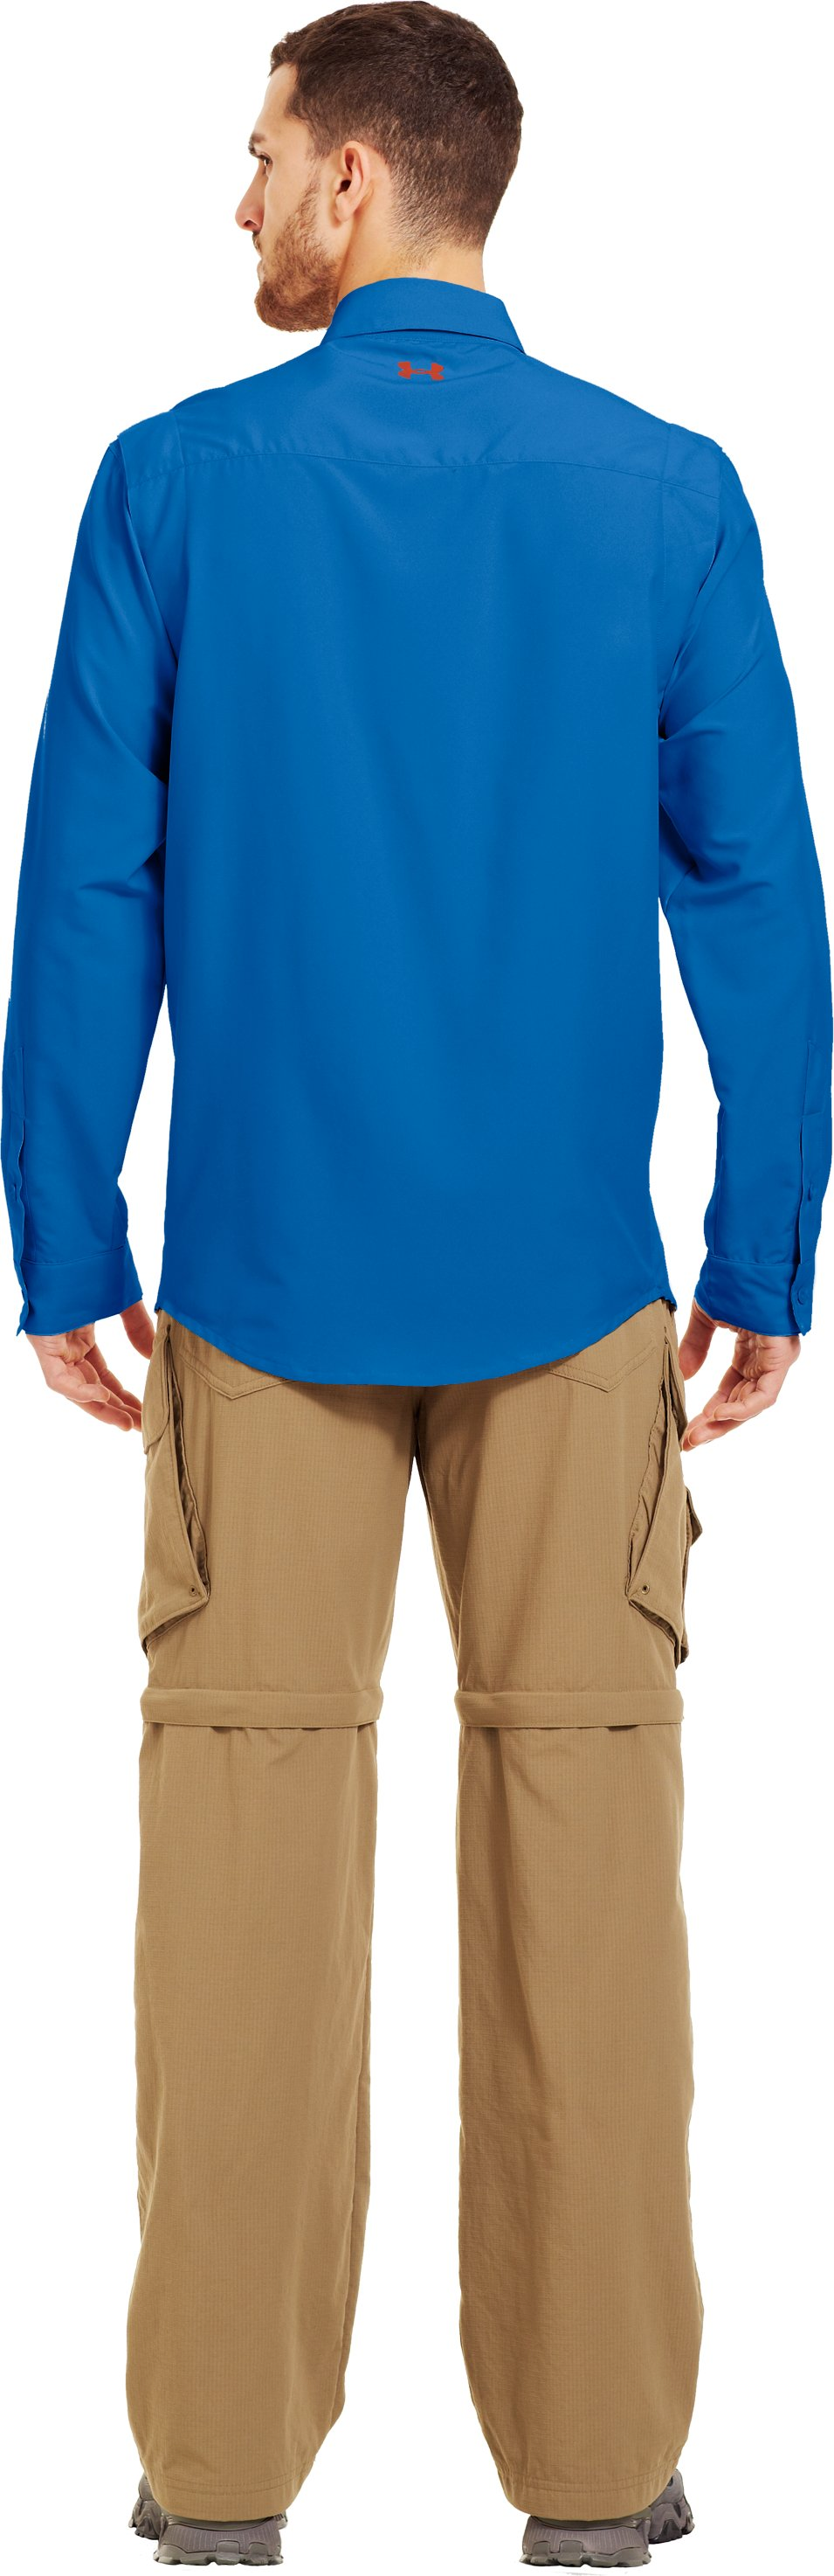 Men's UA Spinner Long Sleeve Shirt, St. Tropez, Back